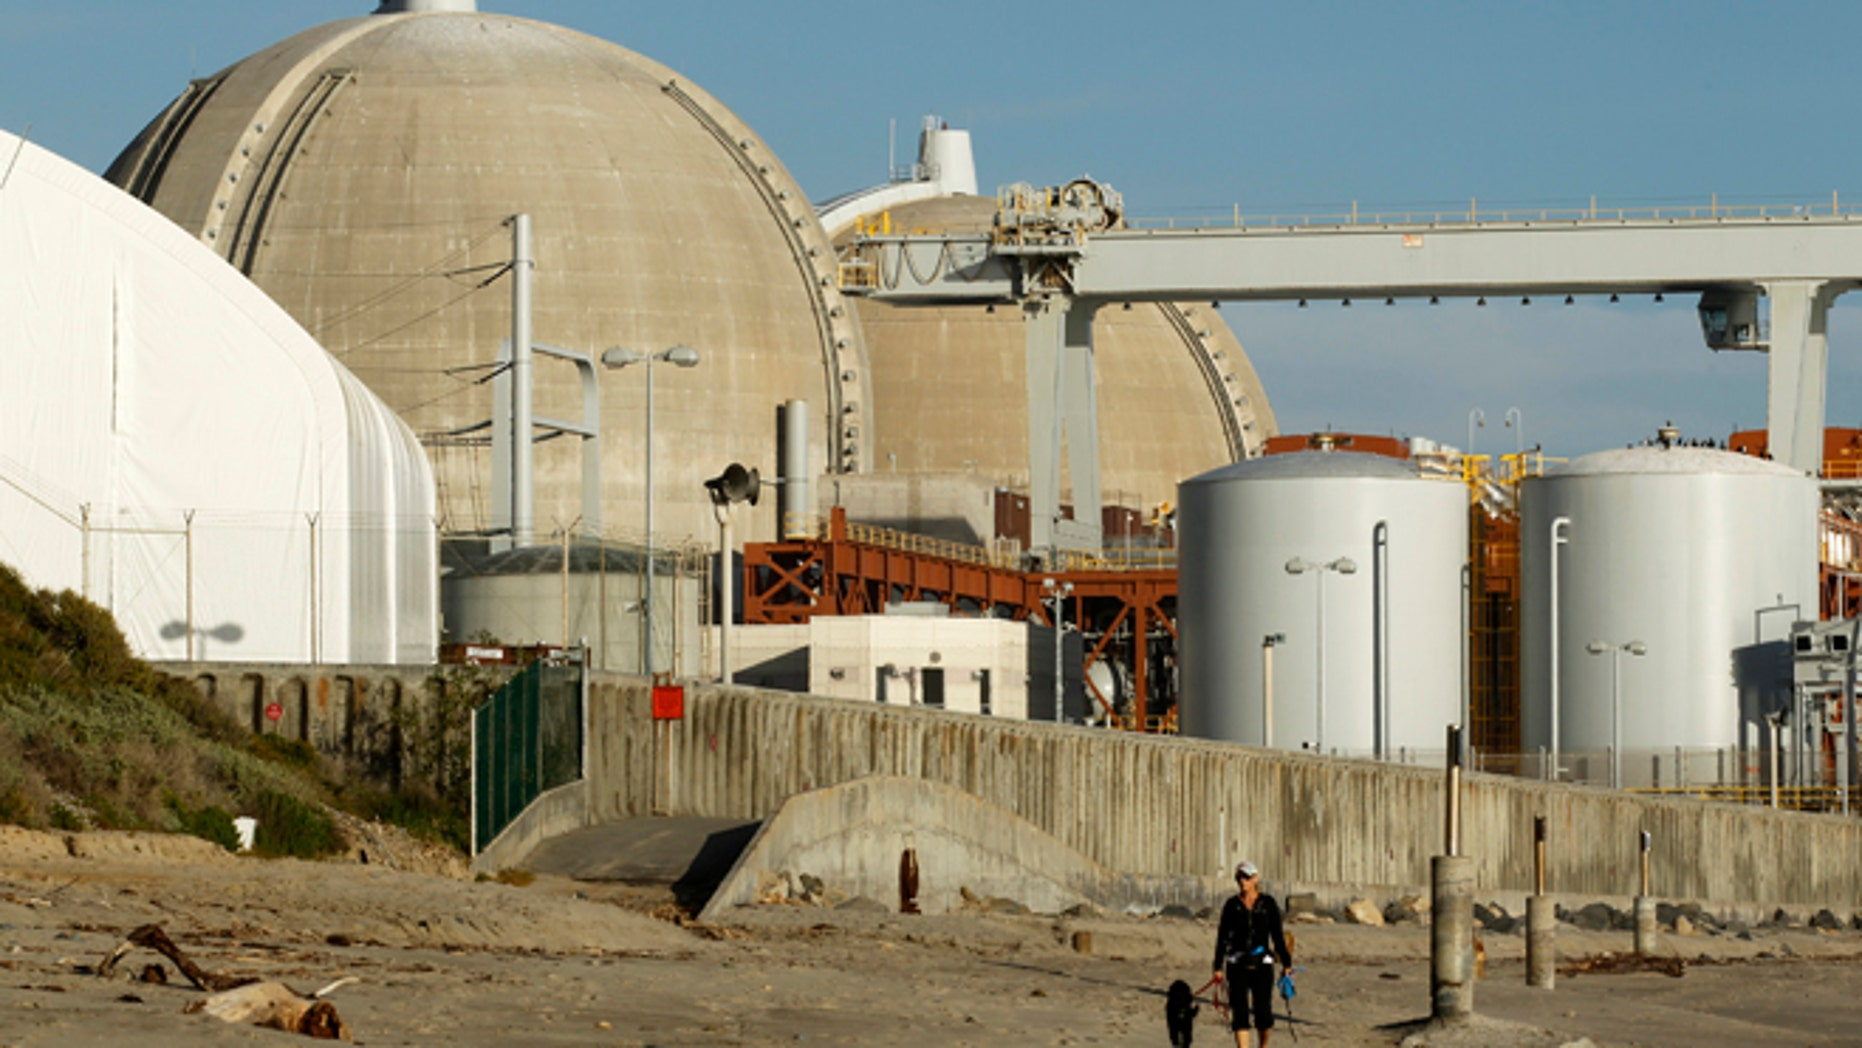 FILE: March 14, 2011: The San Onofre Nuclear Generating Station, on the shore of the Pacific Ocean in North San Diego County, California .